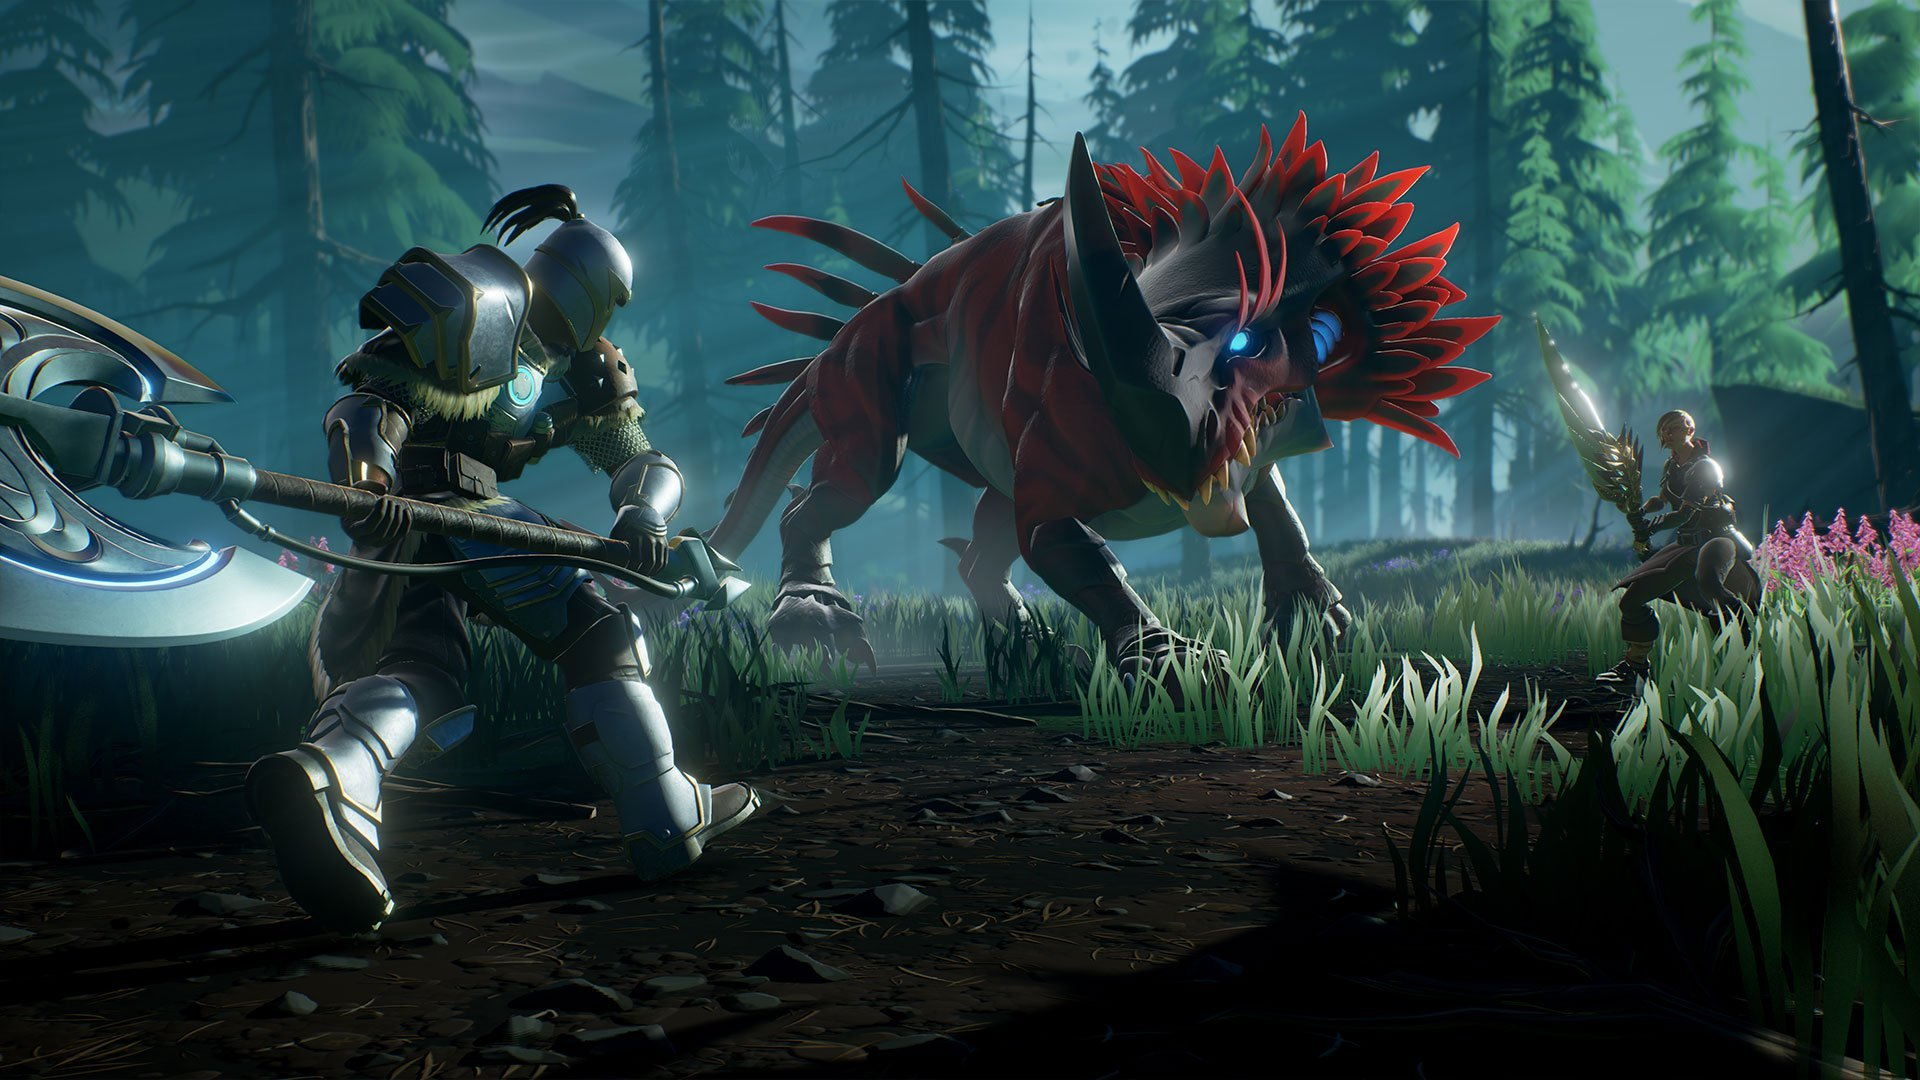 You can't view a health bar when fighting a Behemoth in Dauntless. Instead, you'll need to rely on your knowledge of the Behemoth and its elemental weaknesses.